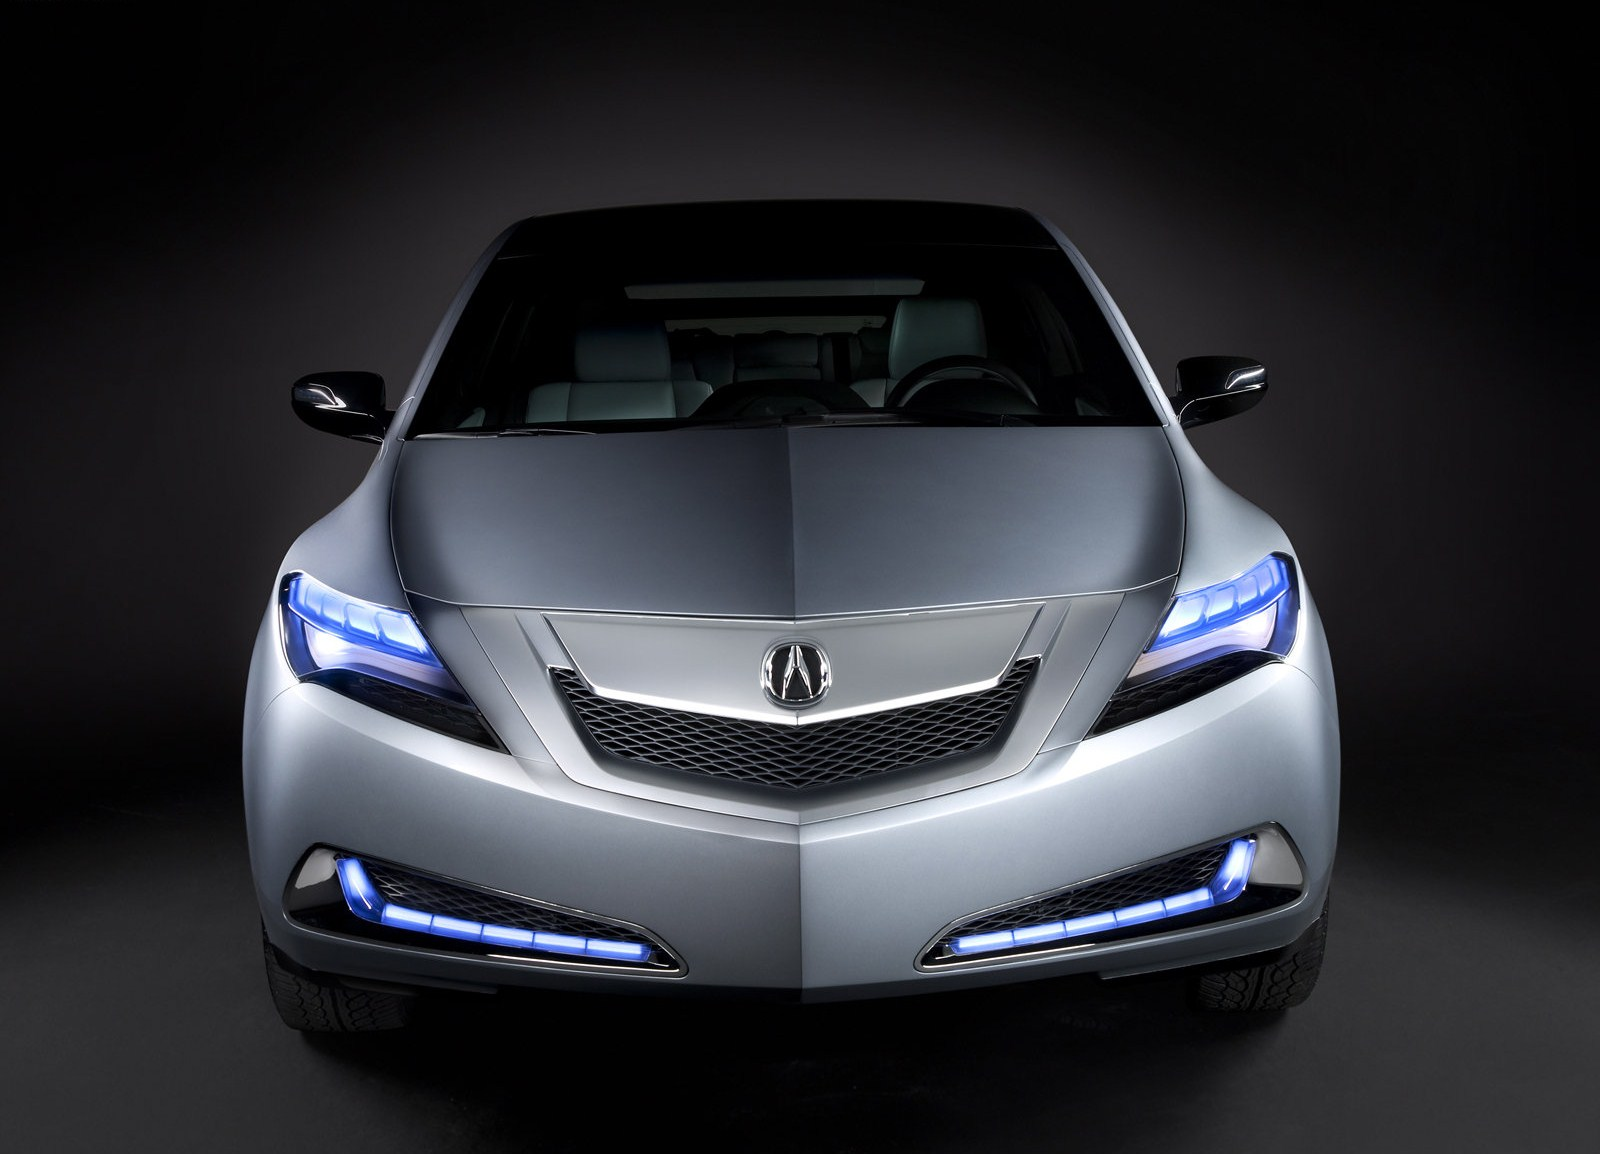 Best Wallpapers: Acura Zdx Wallpapers